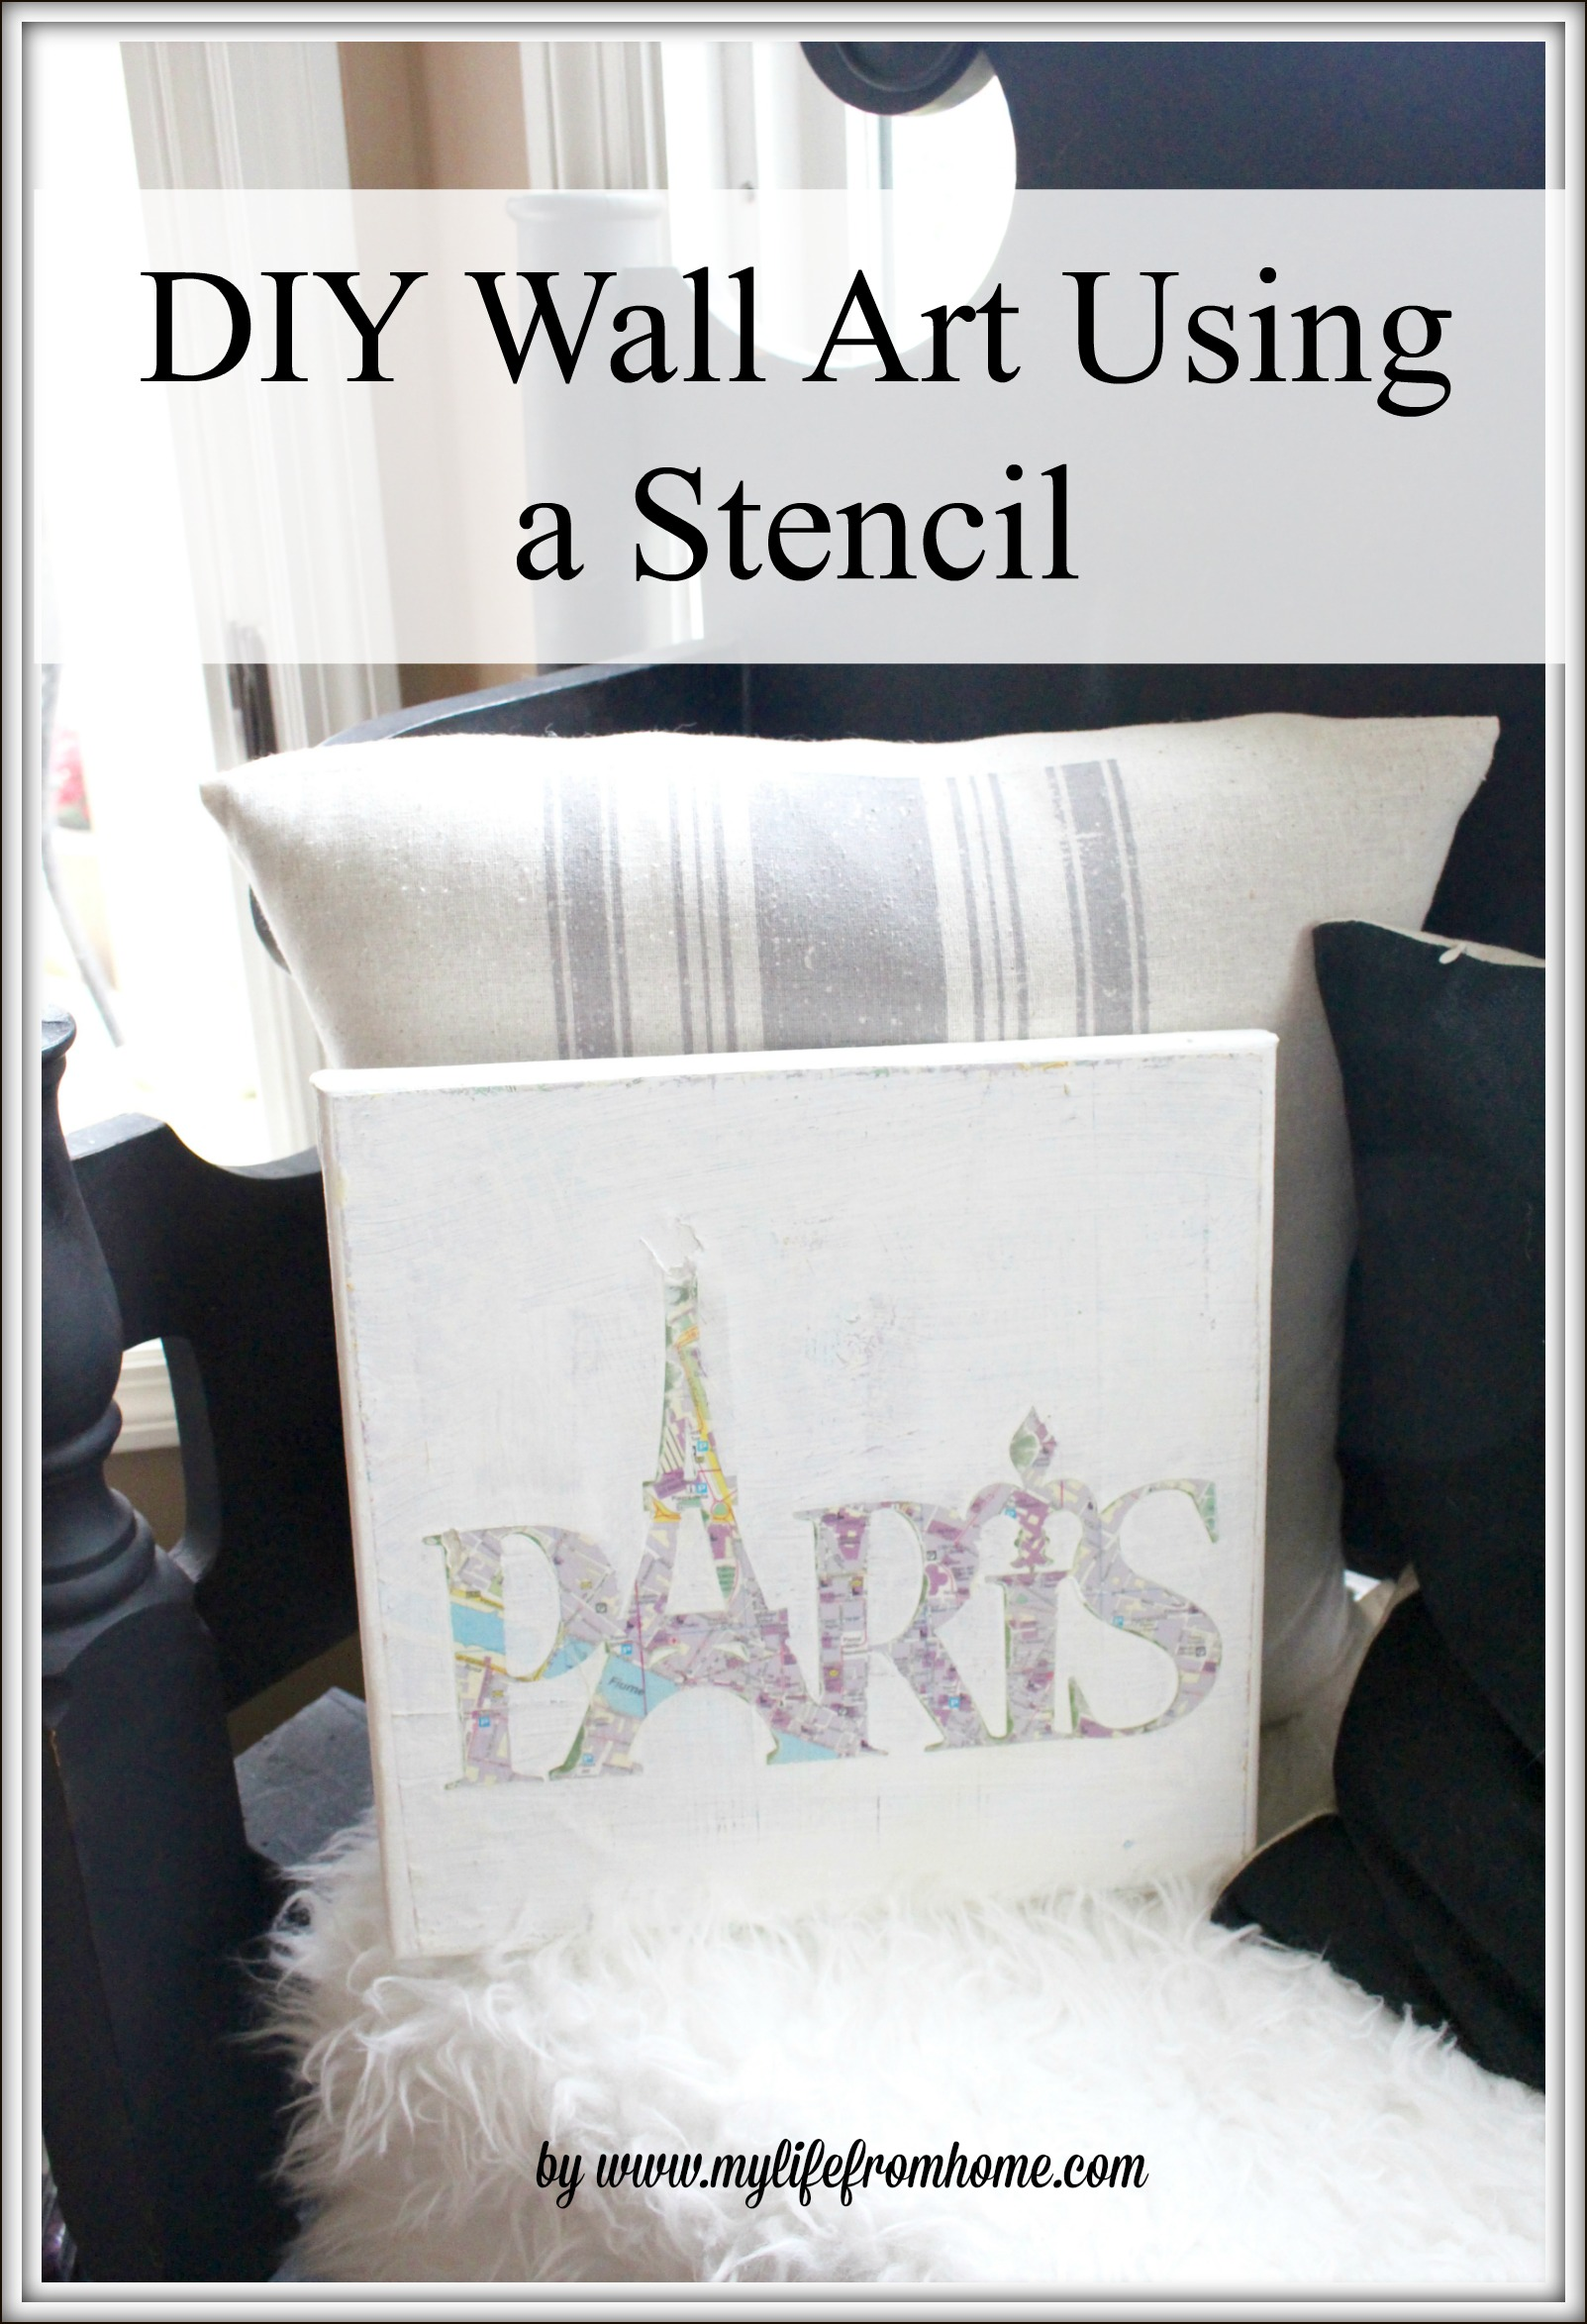 diy-wall-art-canvas-stencil-diy-canvas-art-mod-podge-projects-silhouette-cameo-projects-paris-themed-art